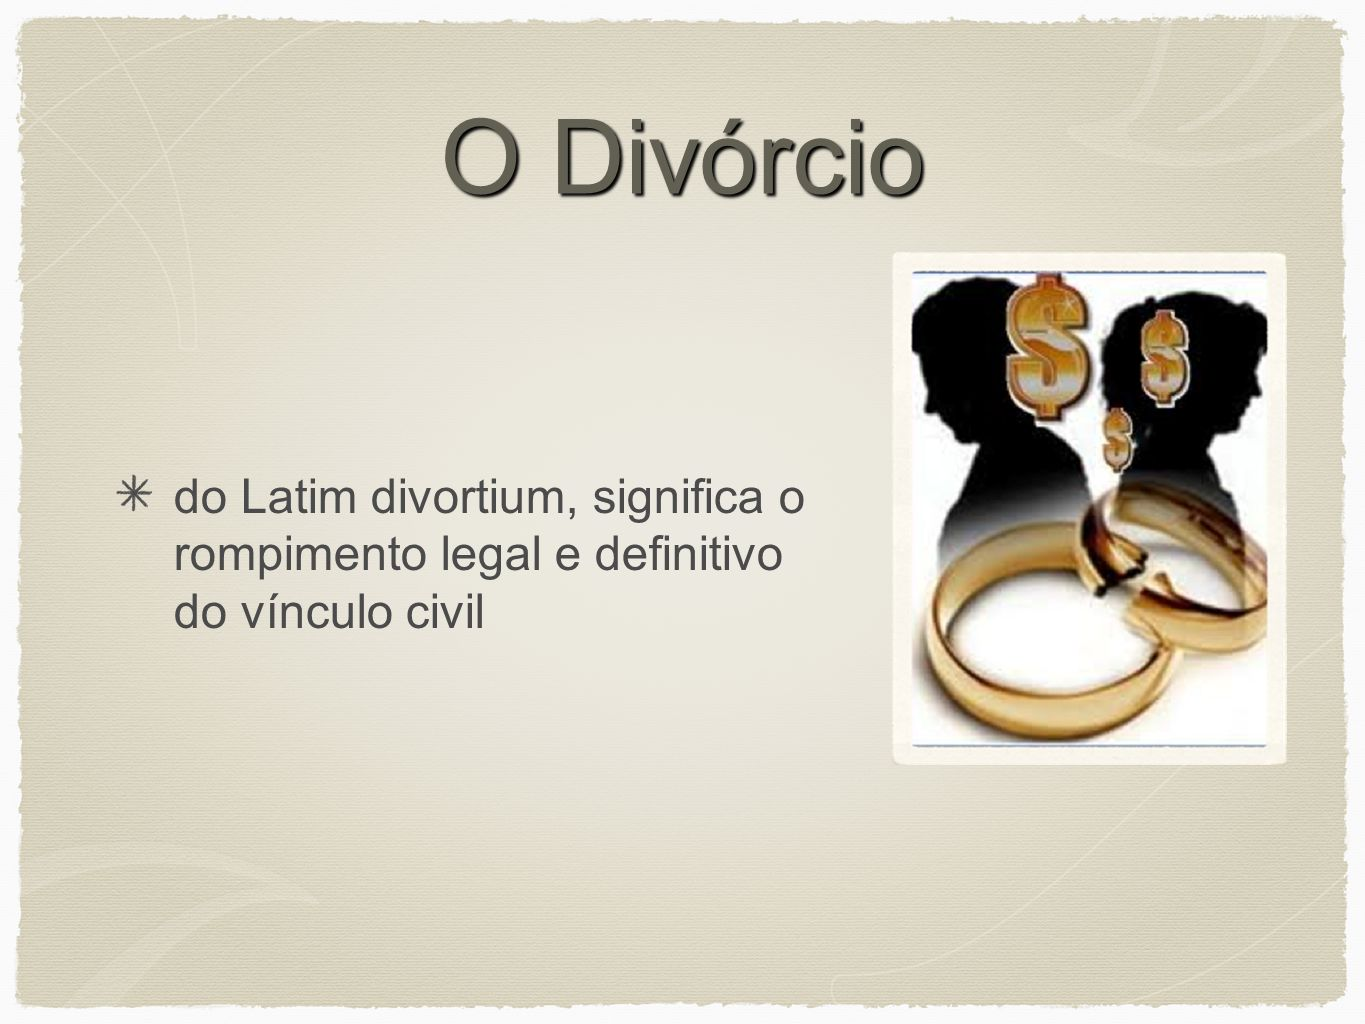 O Divórcio do Latim divortium, significa o rompimento legal e definitivo do vínculo civil